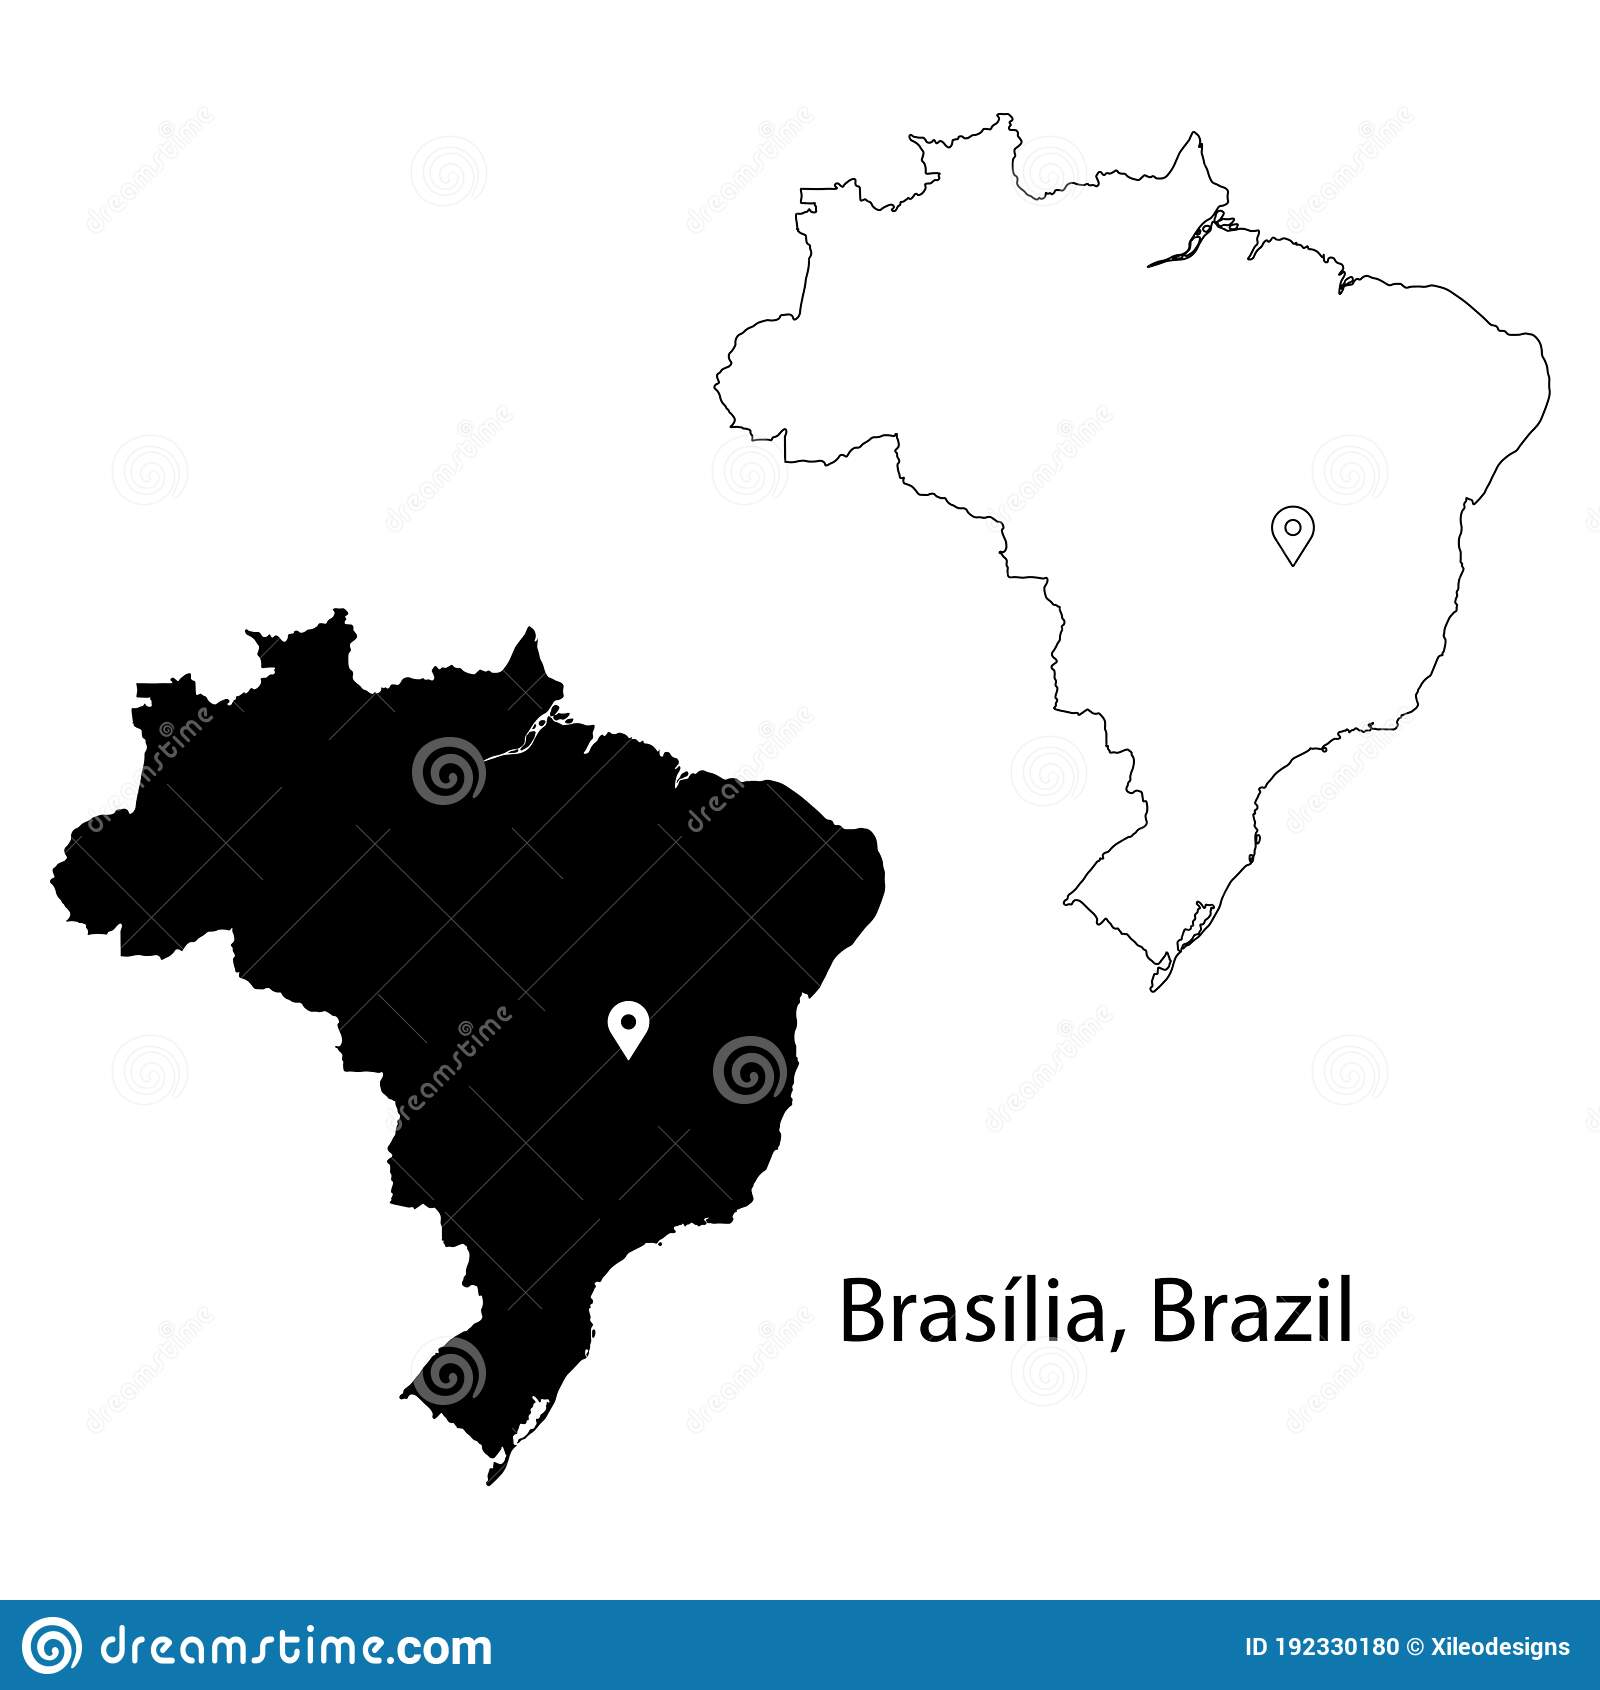 Picture of: Brasilia Brazil Detailed Country Map With Location Pin On Capital City Stock Vector Illustration Of City Drop 192330180